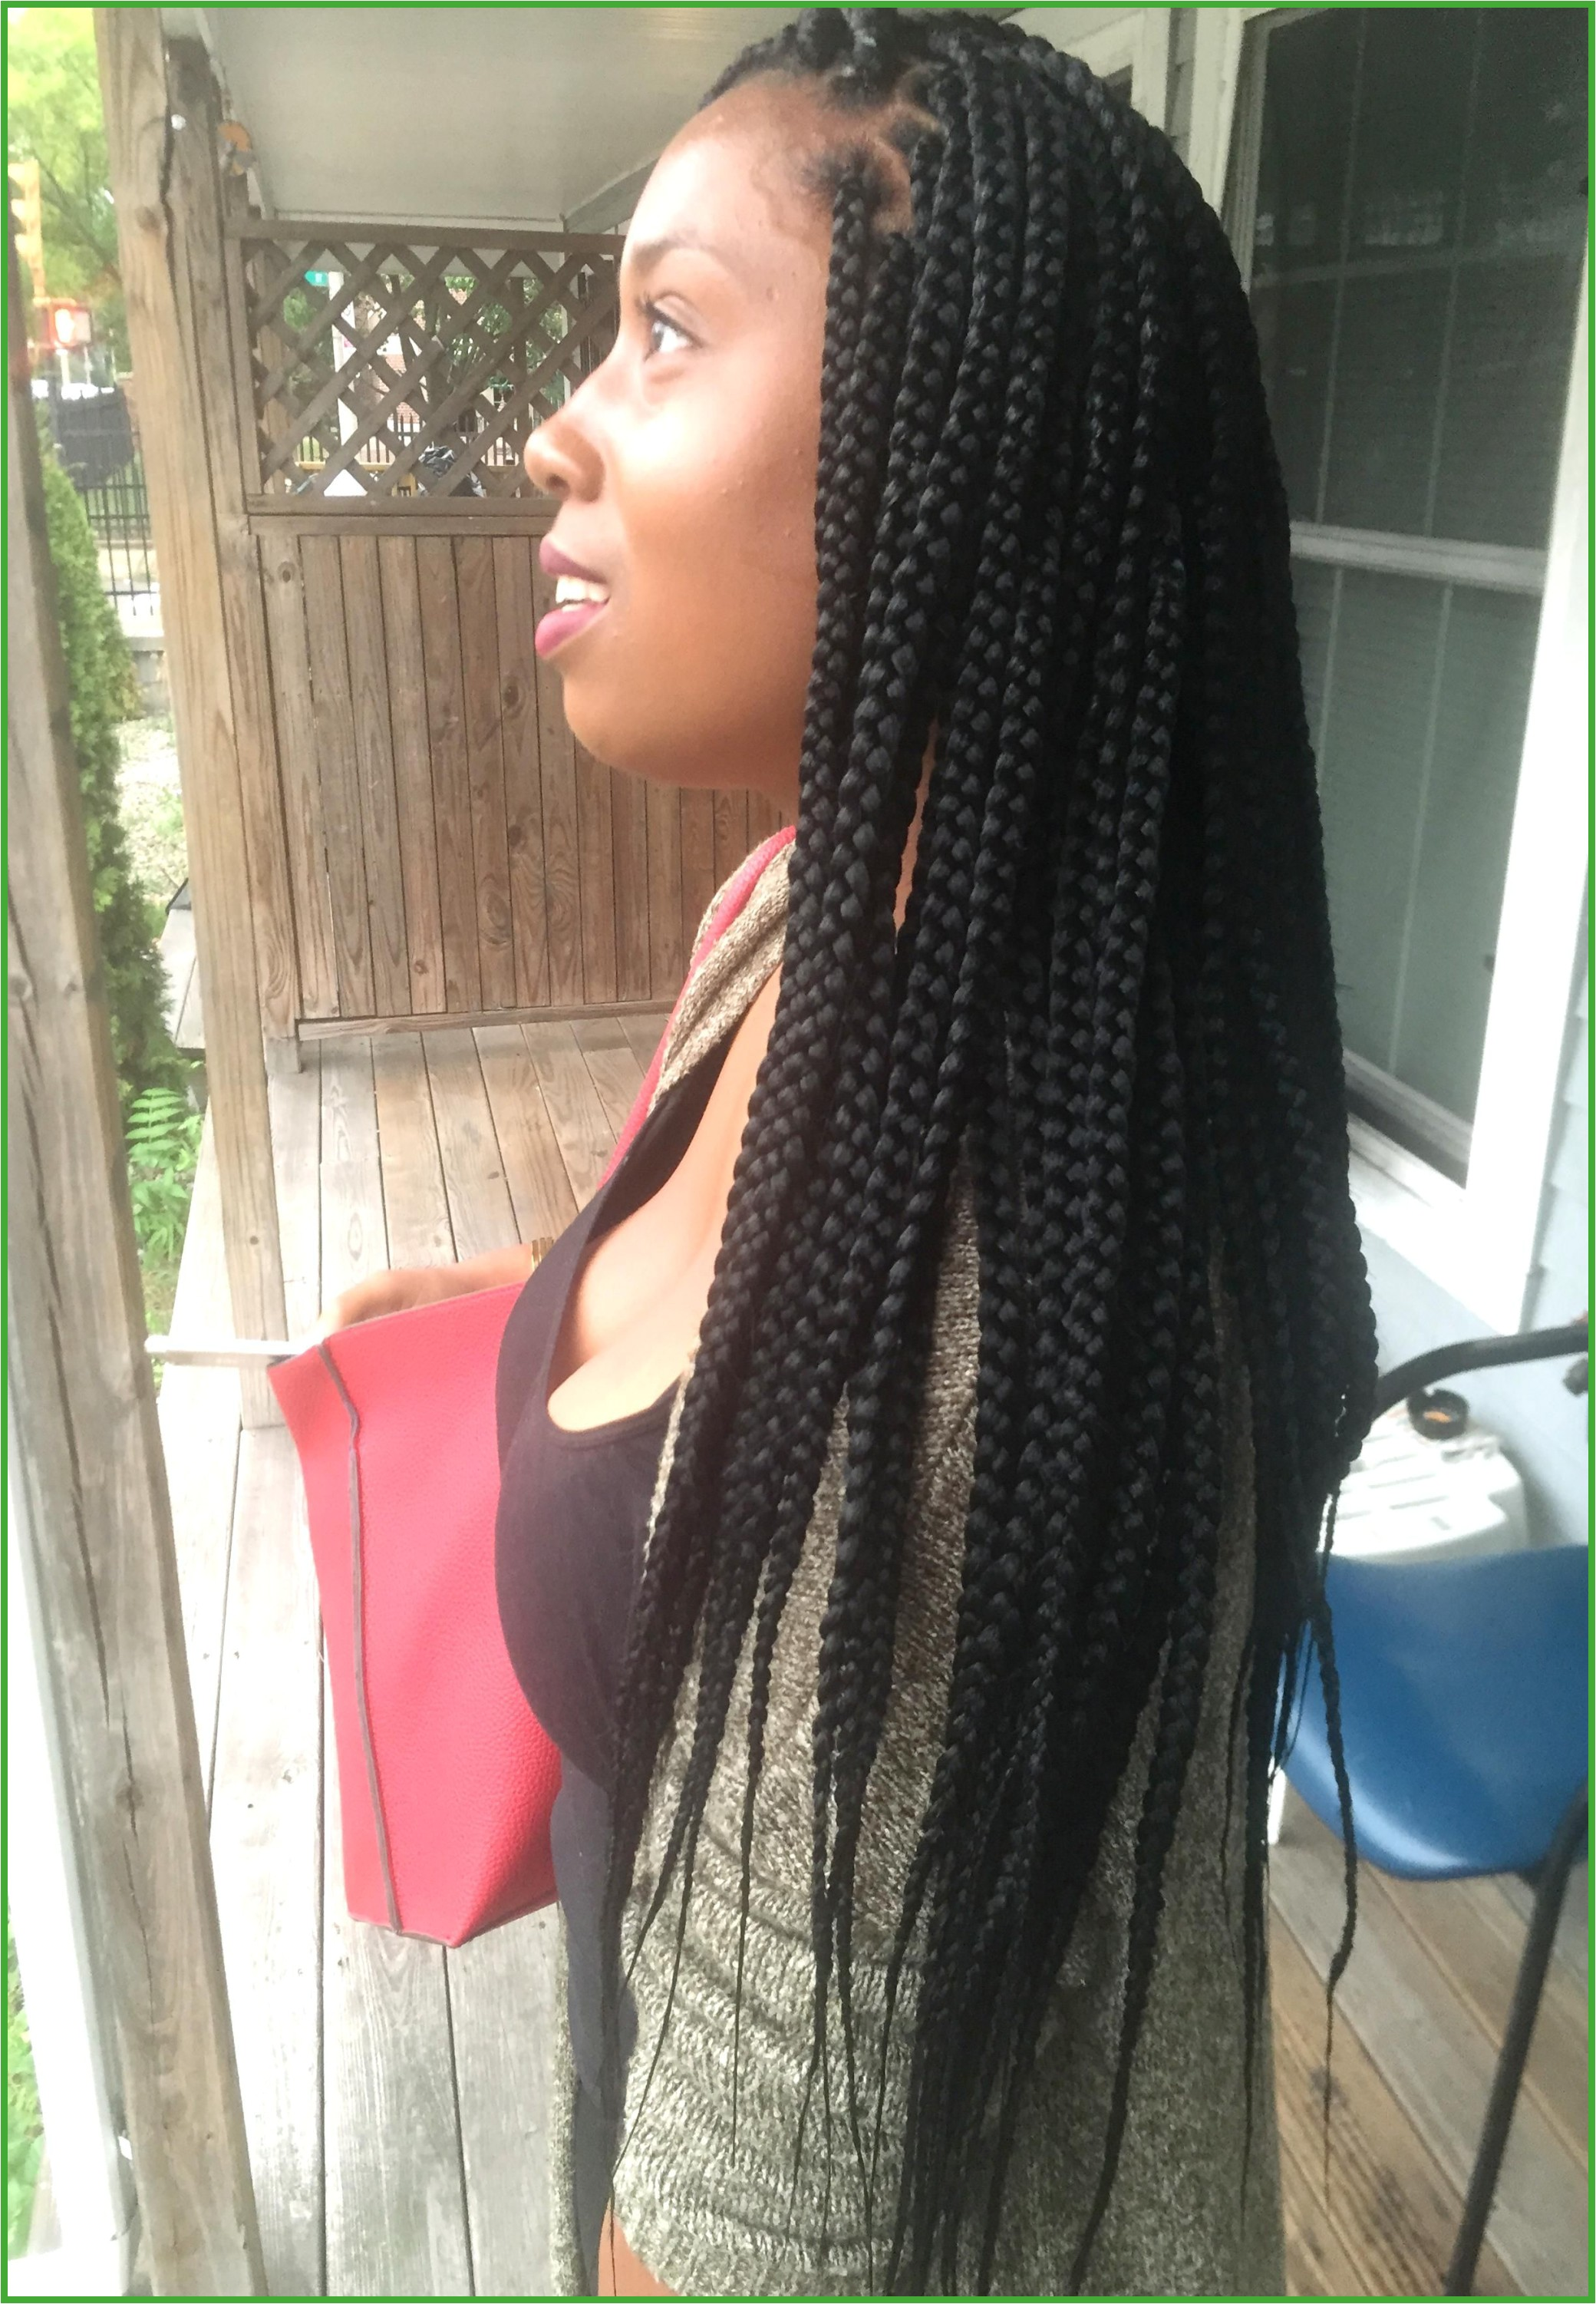 Hairstyles with Extensions New Big Braids Hairstyles Fresh Micro Hairstyles 0d Regrowhairproducts Medium waist length Box Braids 2448—3264